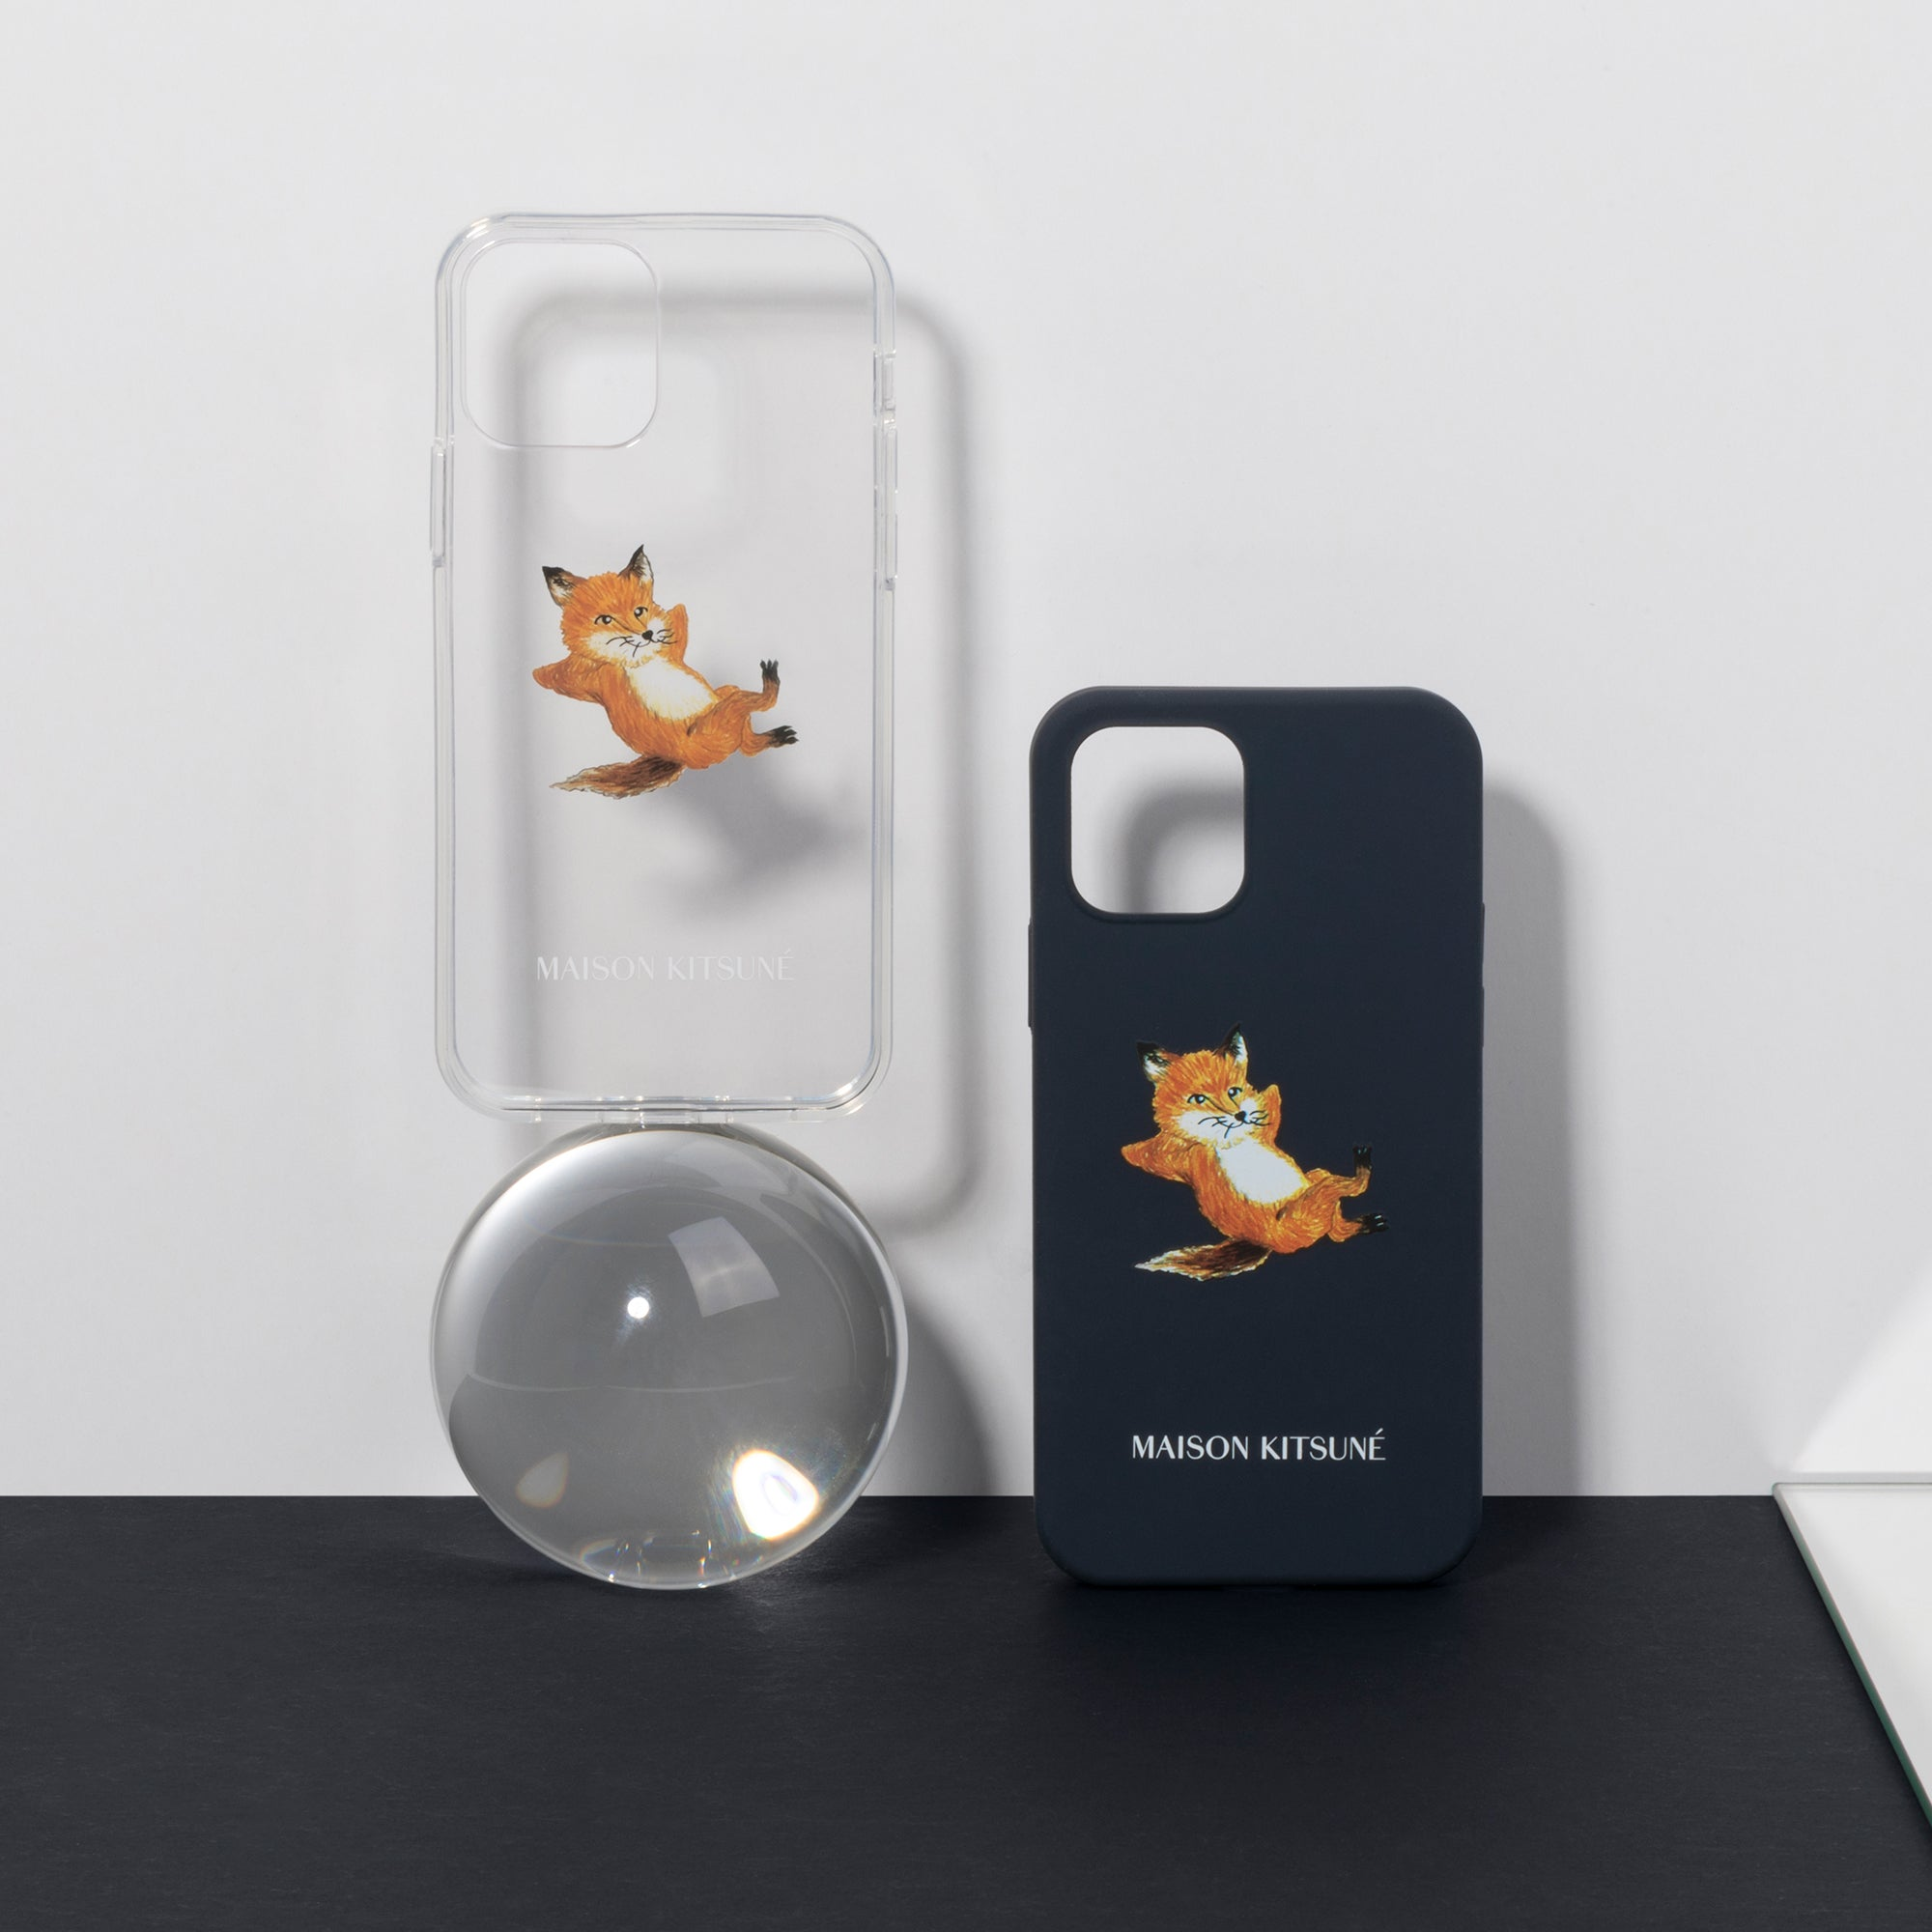 34480260251787,34480260284555,Chillax Fox Case (iPhone 12)